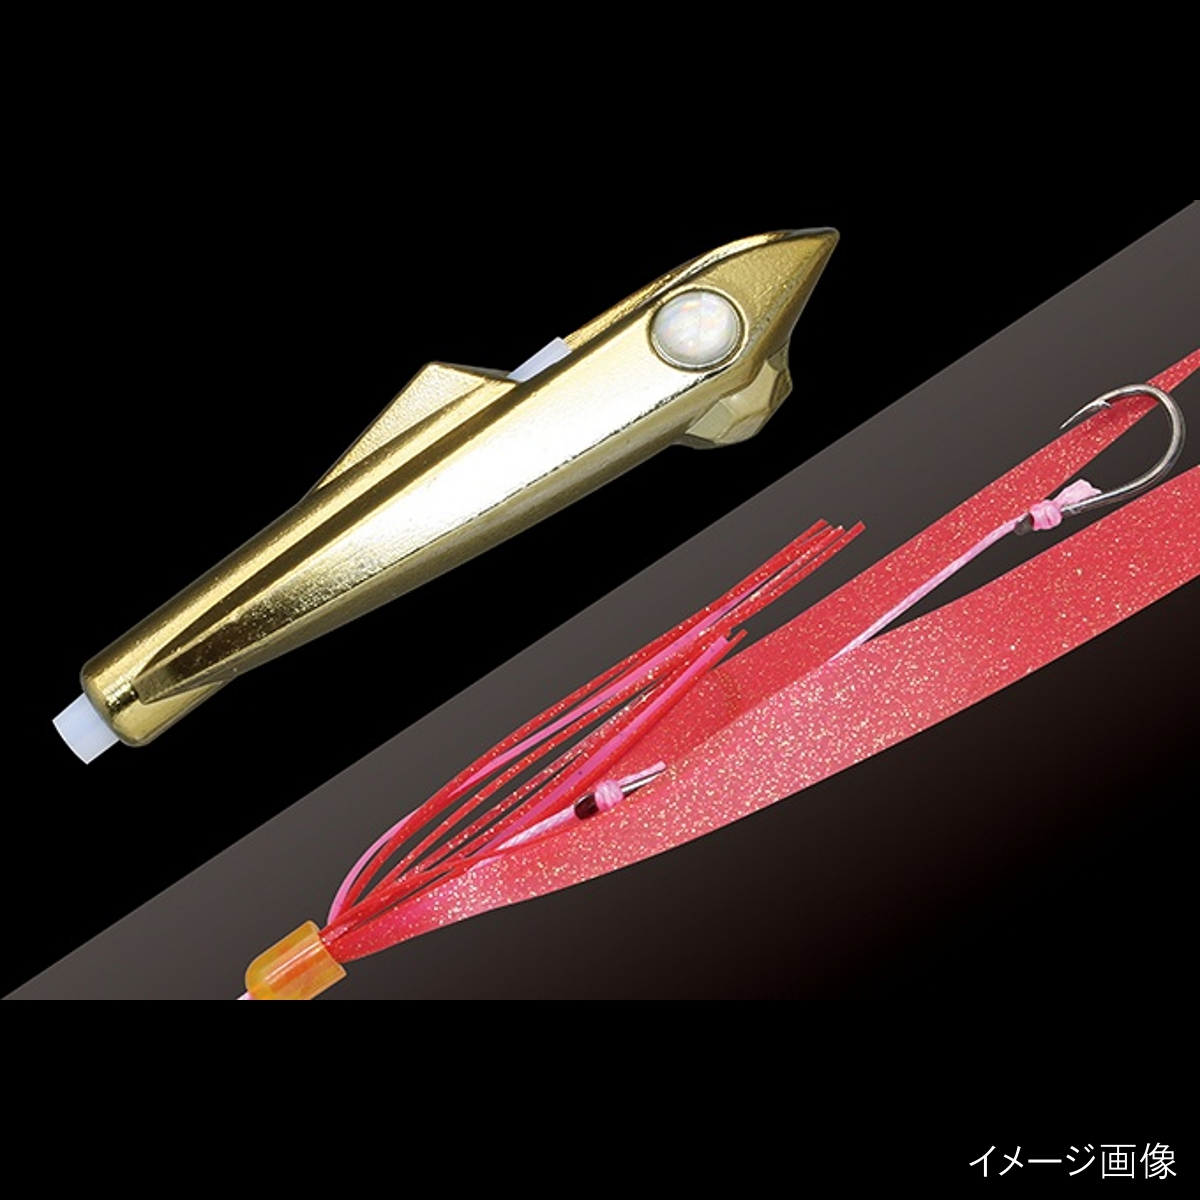 Jackal (JACKALL) Bing rocket 30 g plated / red gold flag